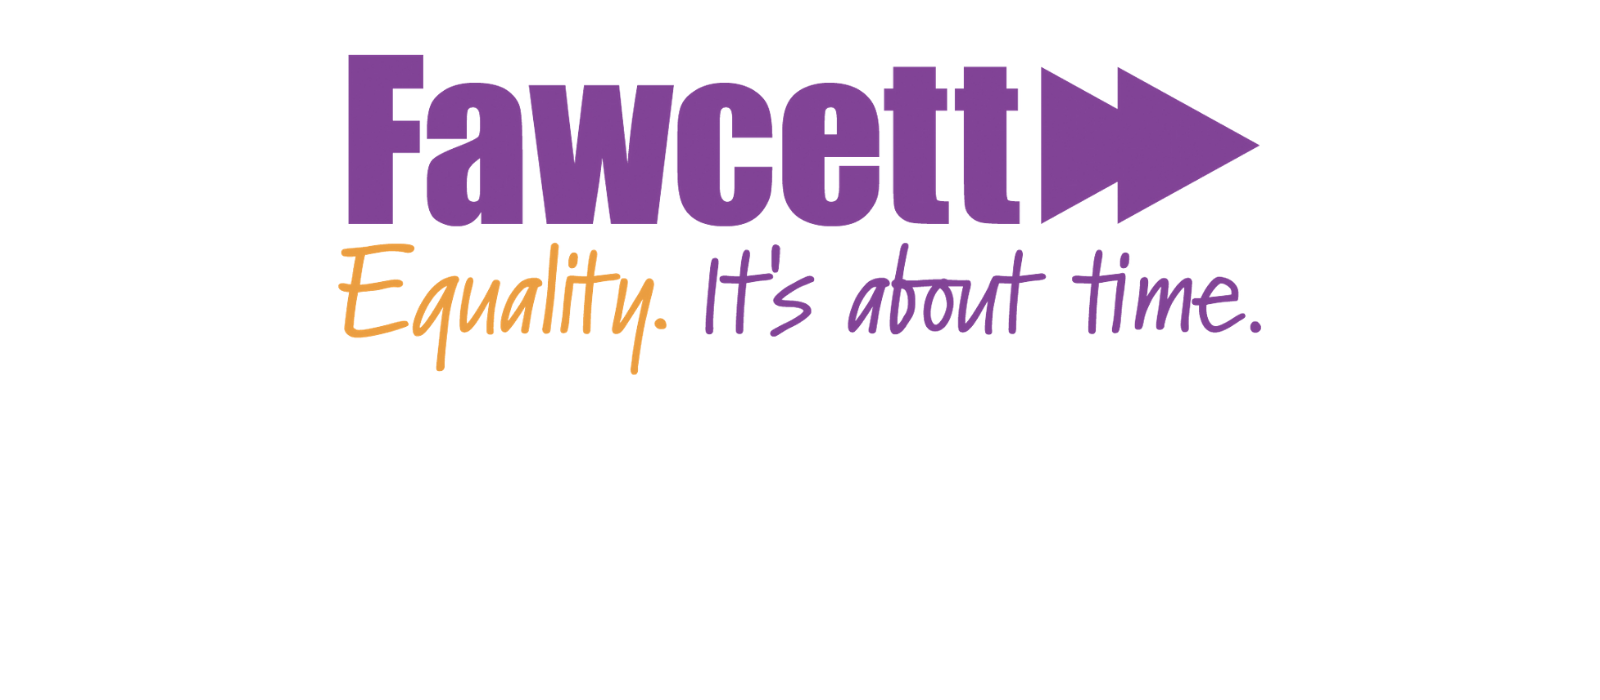 Fawcett Society and Young Women's Trust to begin merger talks